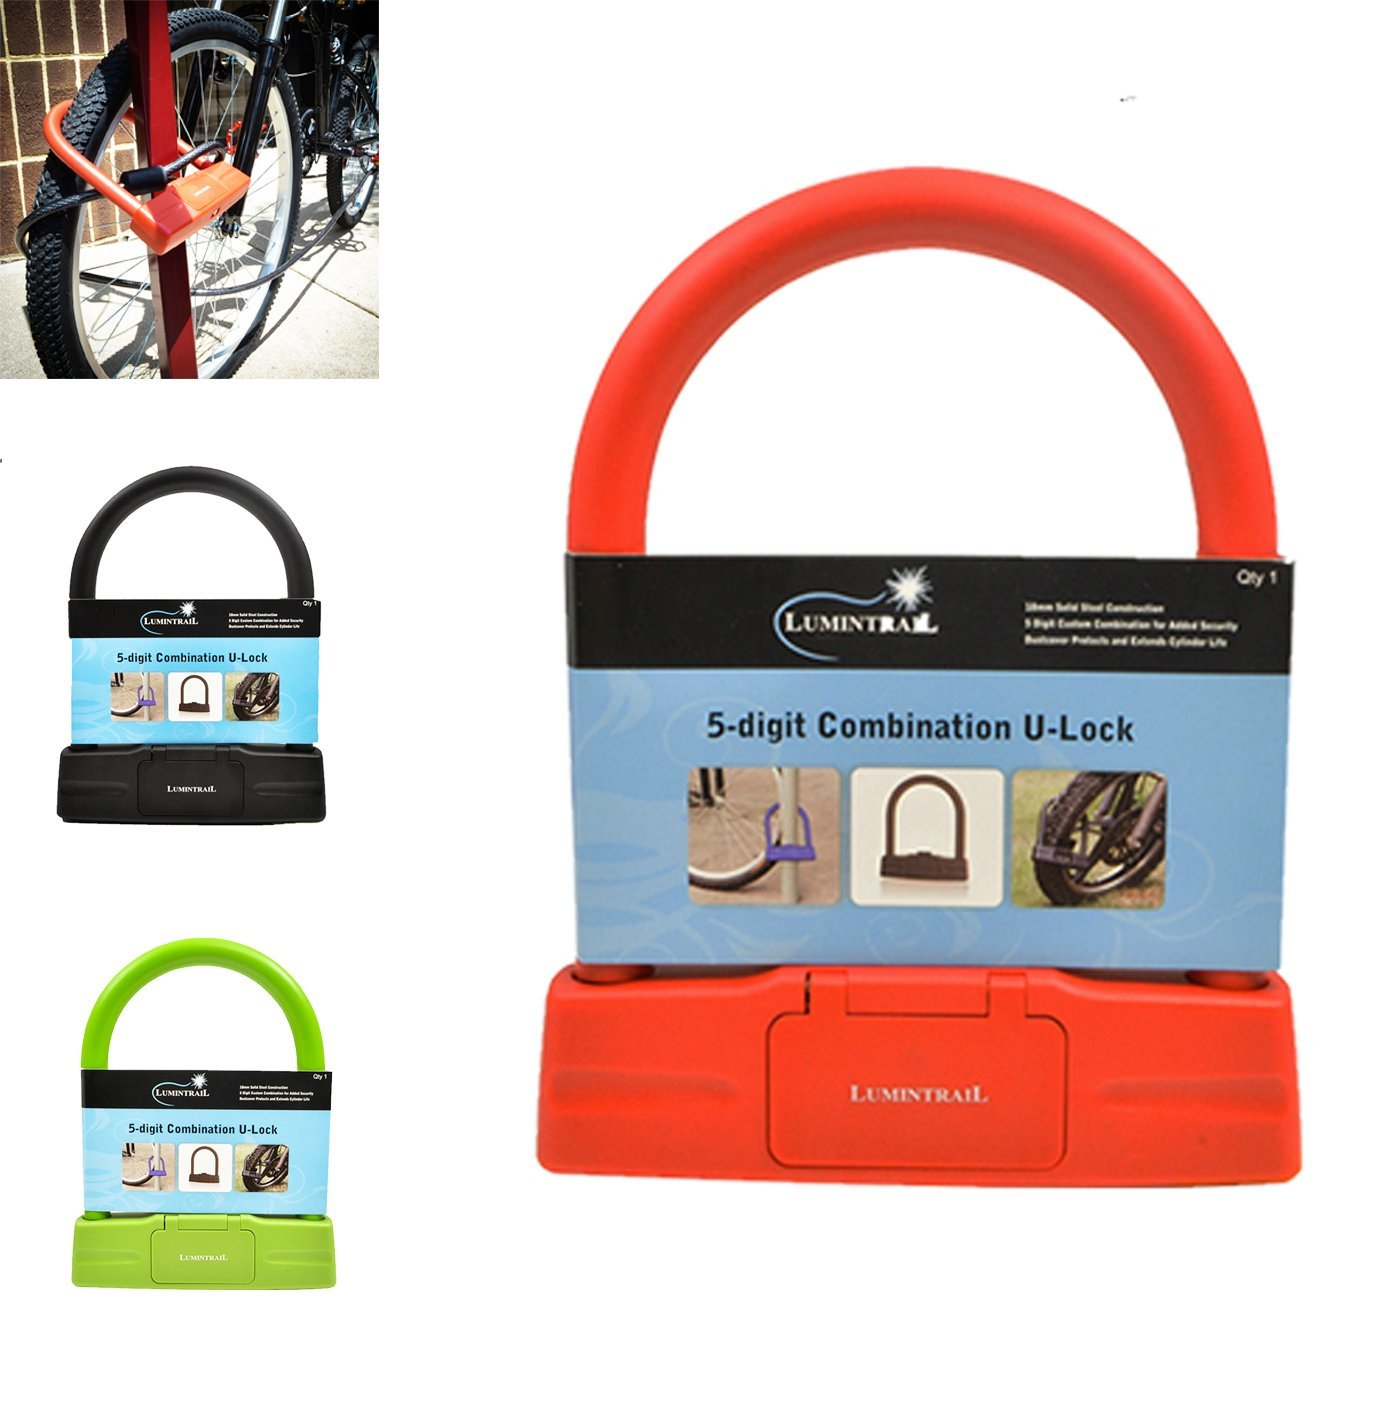 Lumintrail 18mm Heavy Duty 5-Digit Bicycle Bike Combination U-Lock - Assorted Colors